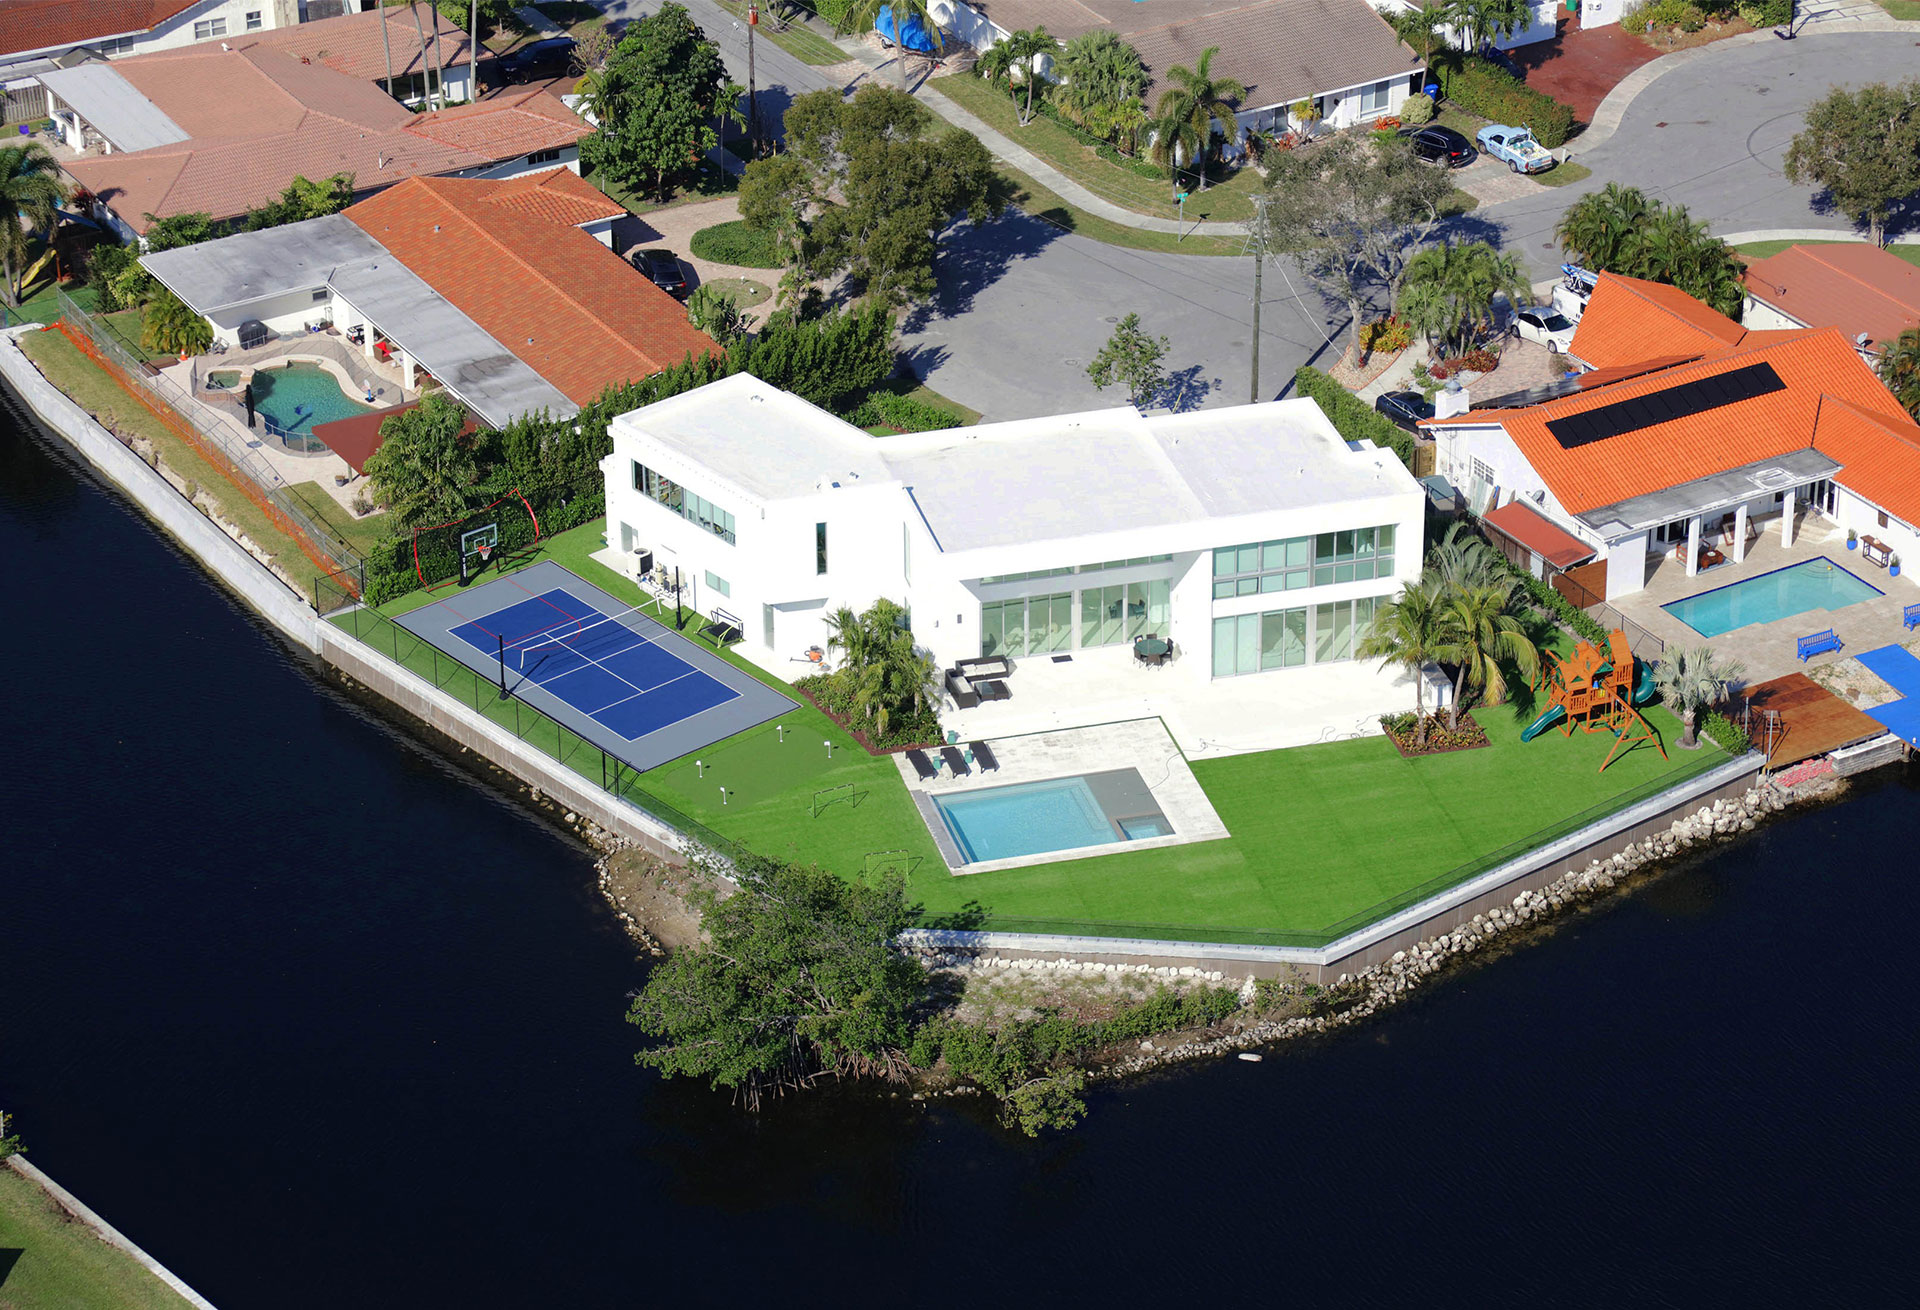 Landscaping Design at Lake Point, North Miami Beach